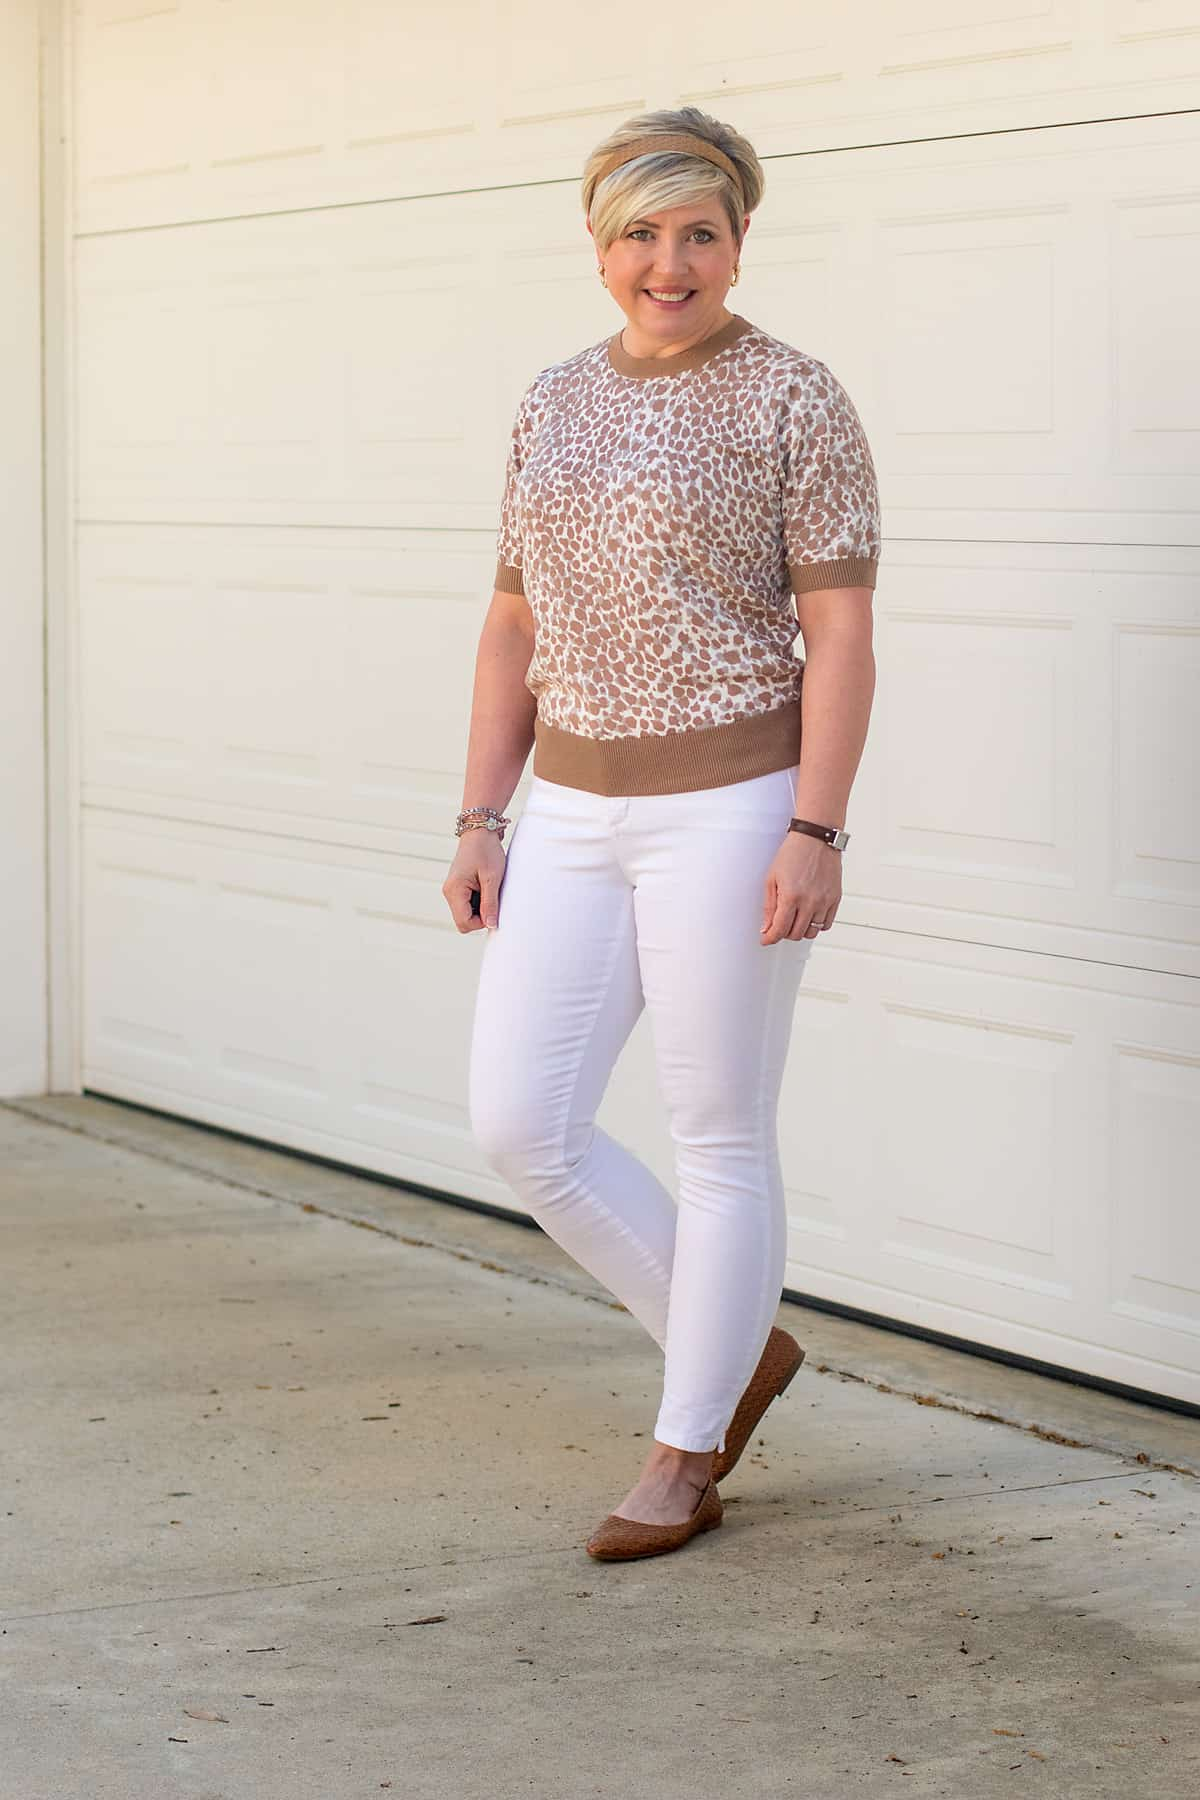 women's spring neutrals outfit with leopard sweater and white jeans